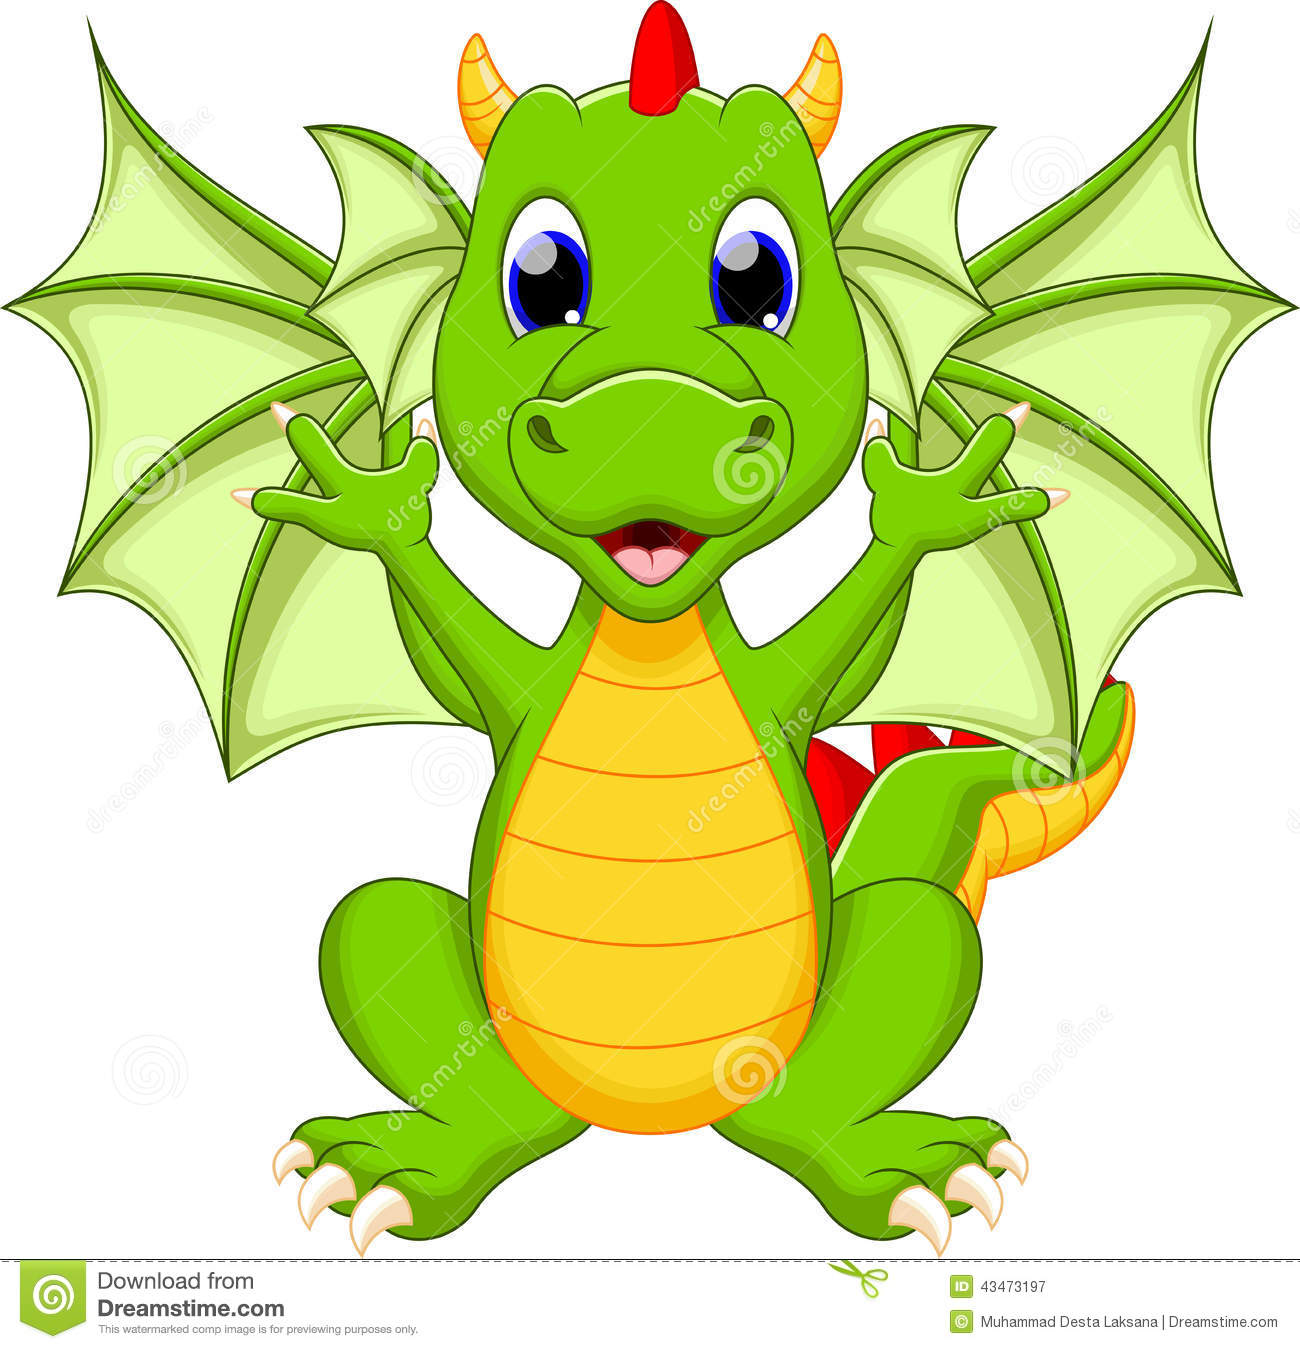 Funny Dragon Cartoon Stock Illustration - Image: 43473197